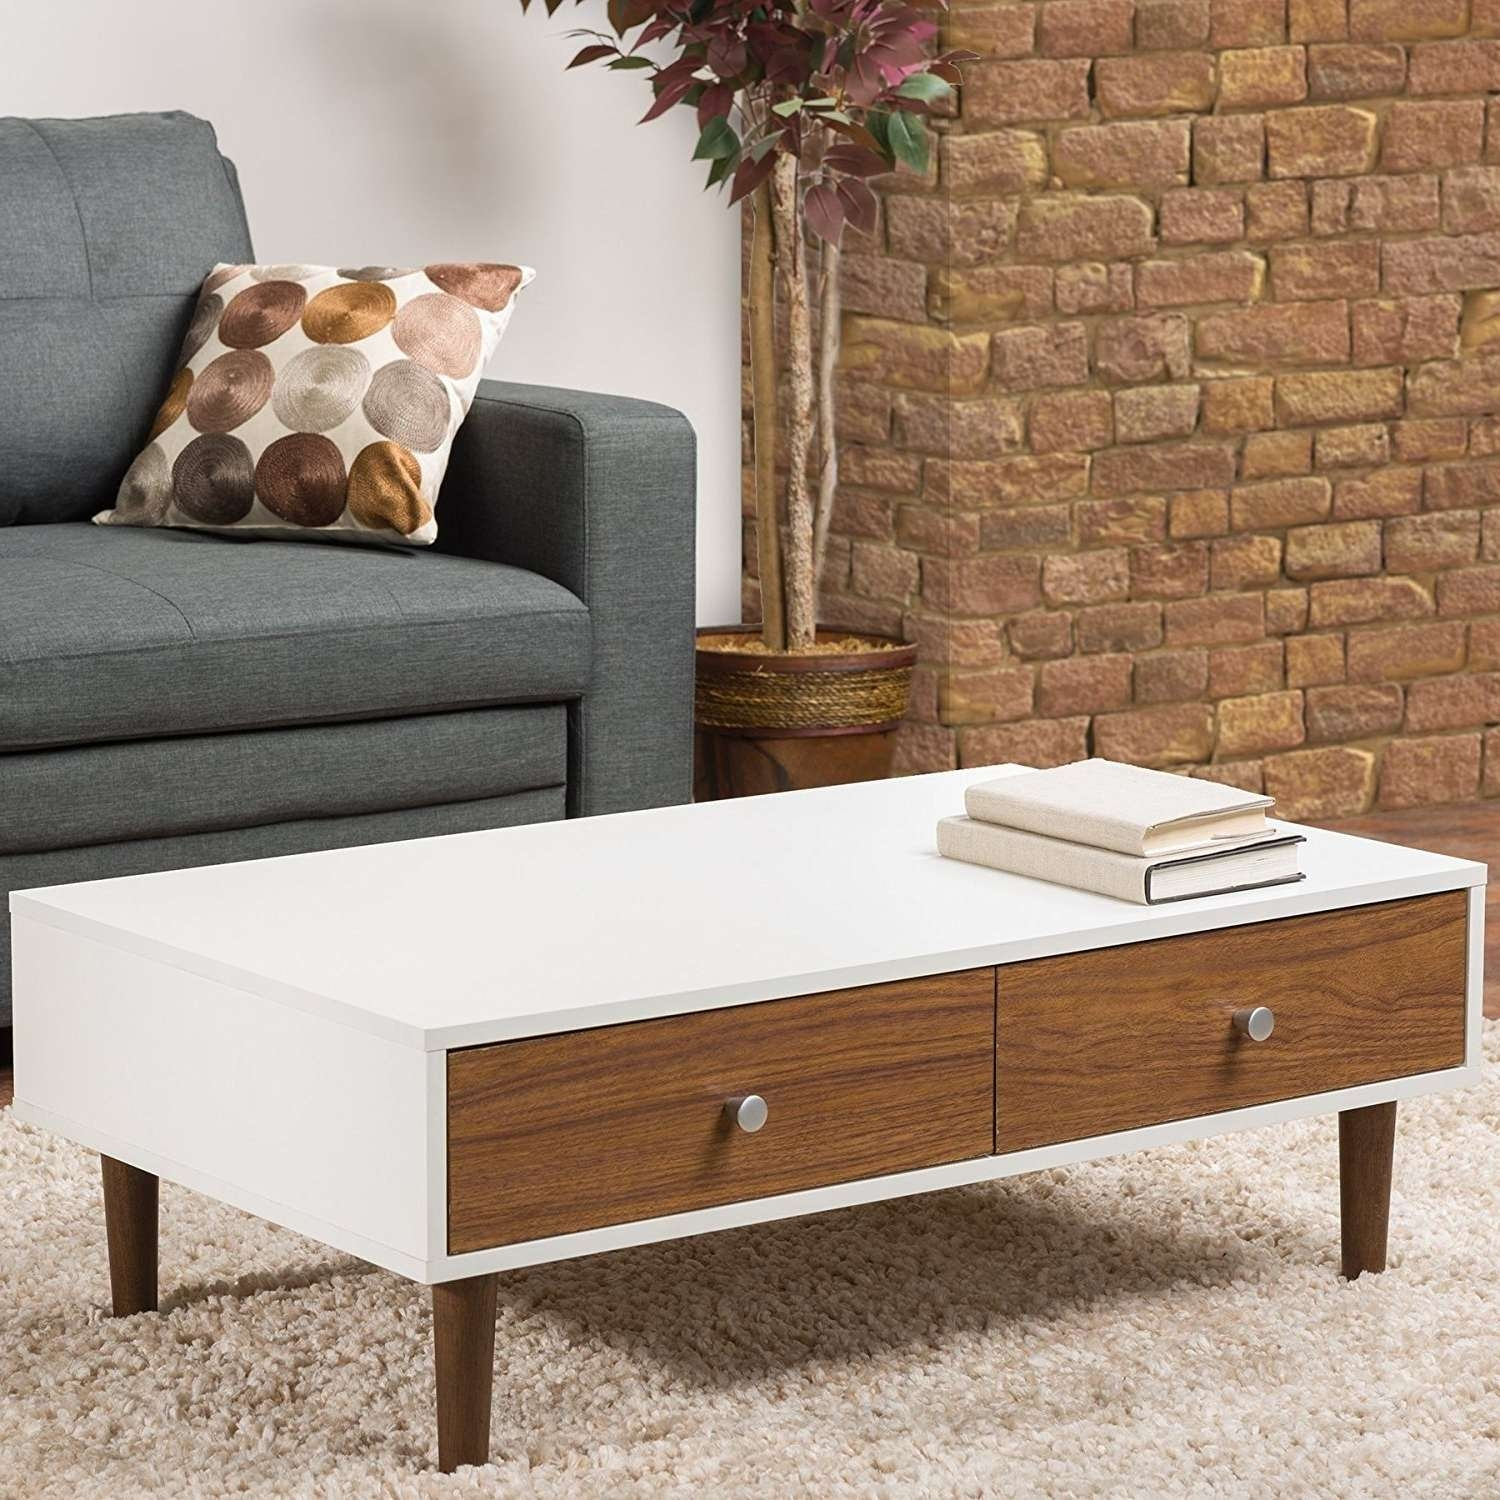 Coffee Tables : Splendid Pine Coffee Table Small Wooden Coffee Regarding Trendy Round Coffee Tables With Drawers (View 6 of 20)